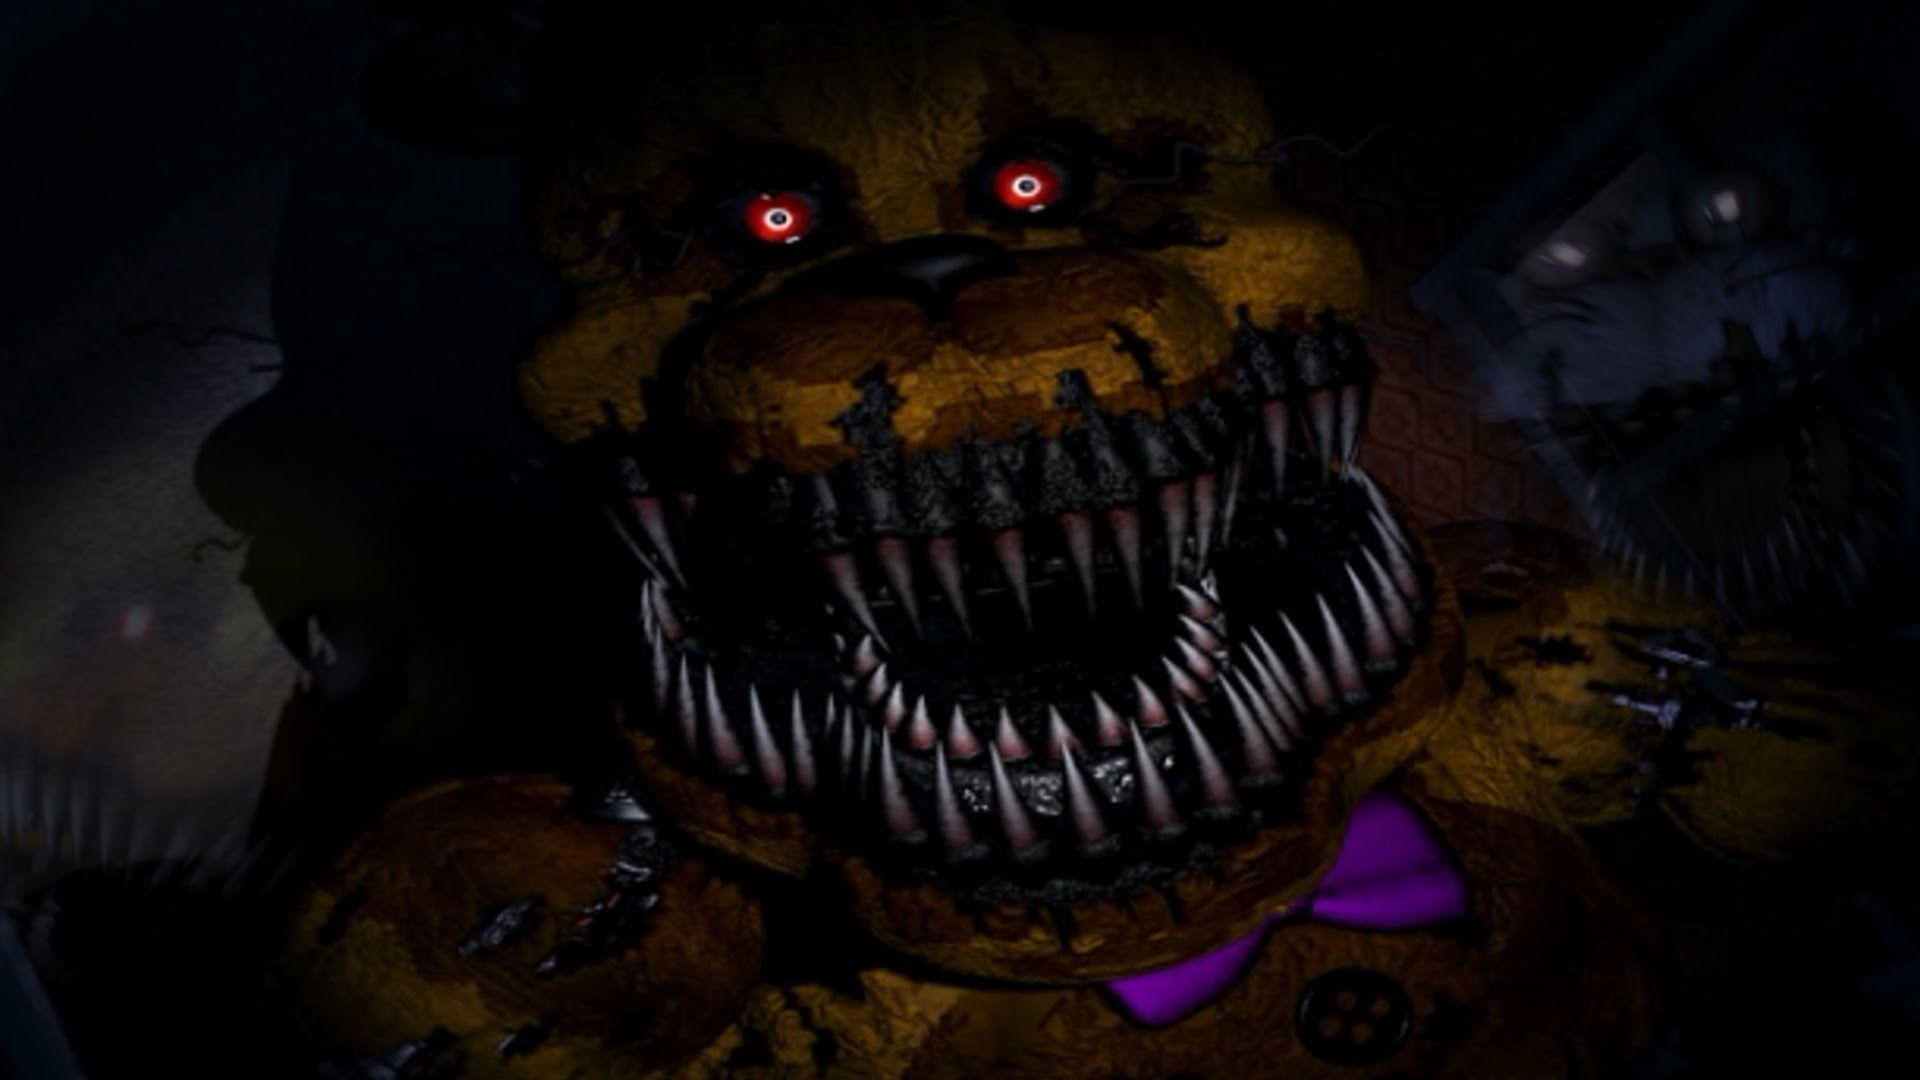 Five Nights at Freddy's 4 #5: GOLDEN FREDDY & The Bite of 87!